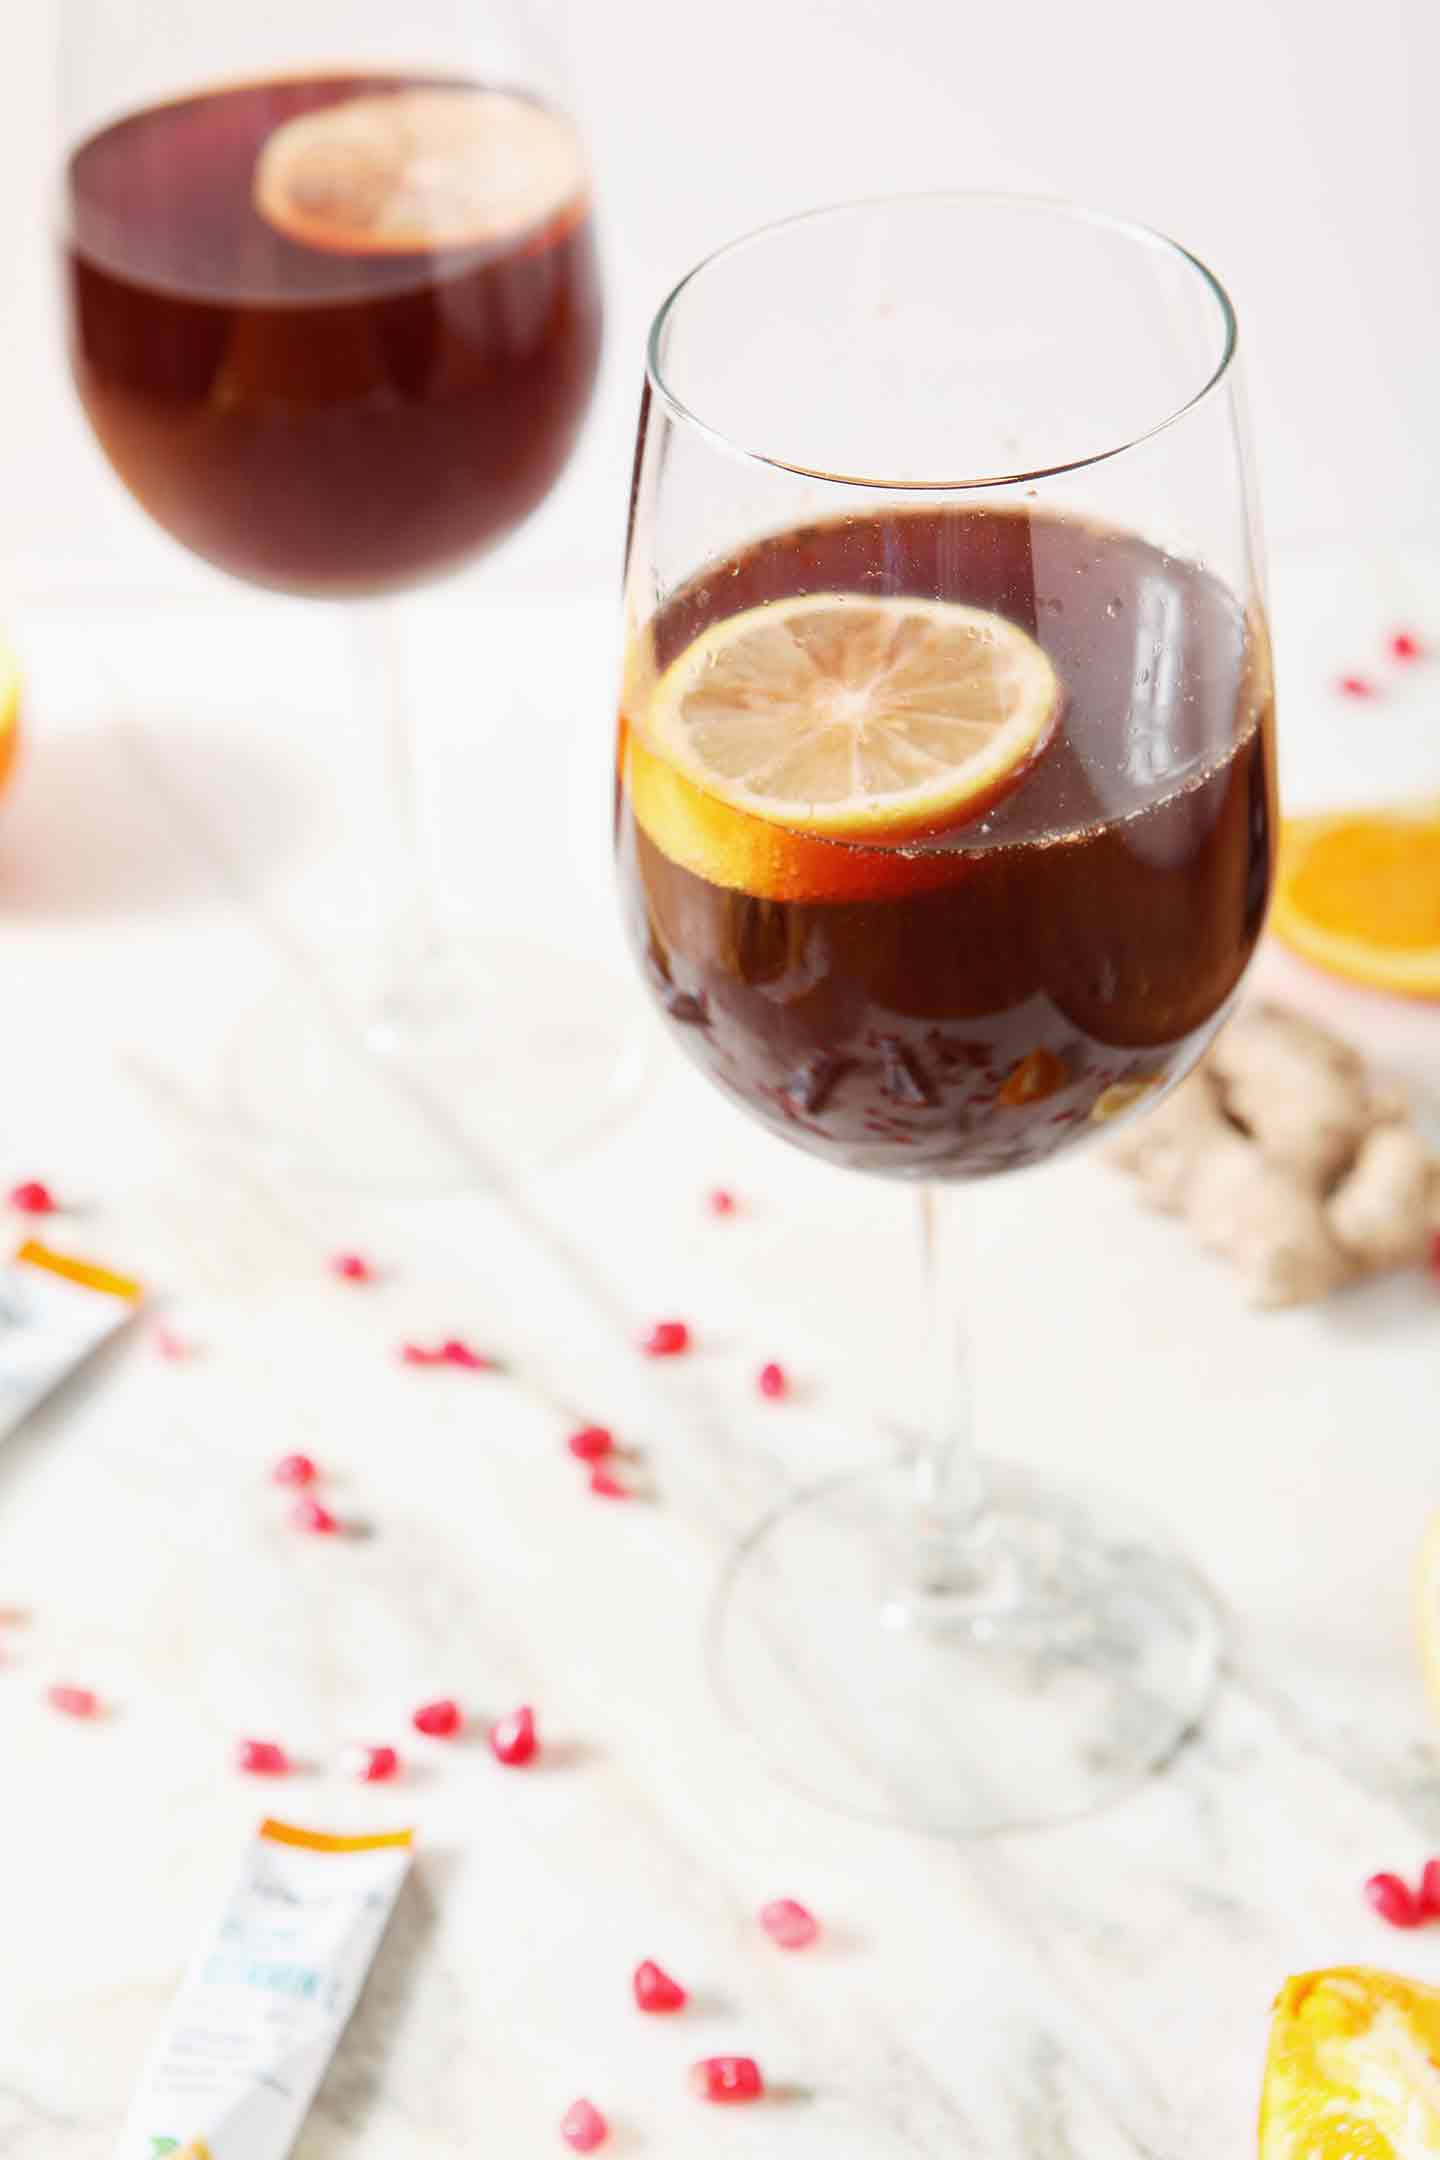 Two Pomegranate Ginger Orange Sparkling Mocktails, garnished with lemon slices, are shown on a marble background, surrounded by fresh ginger root, pomegranate arils and orange slices